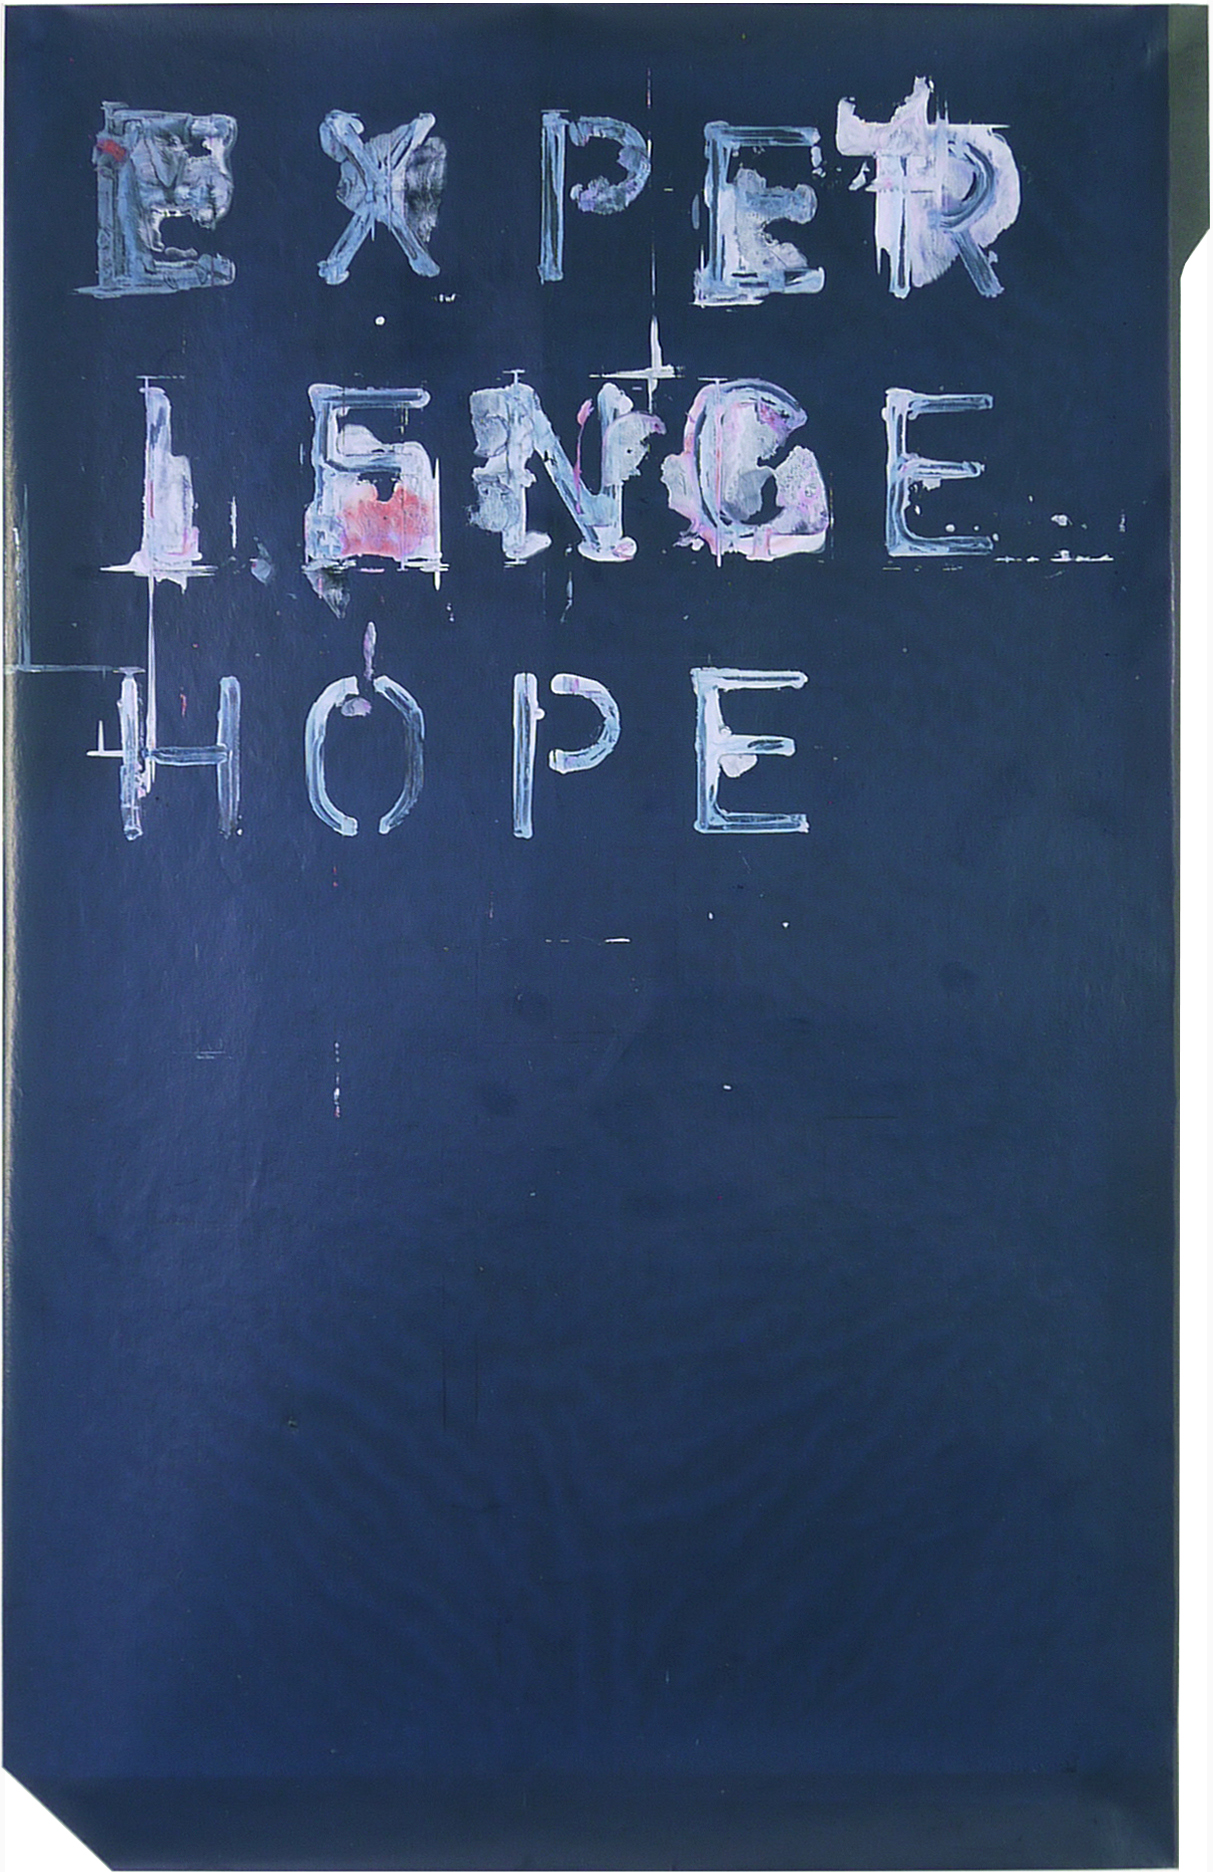 experience hope  8.5 x 14 inches  jiffy on carbon paper  ed. 1